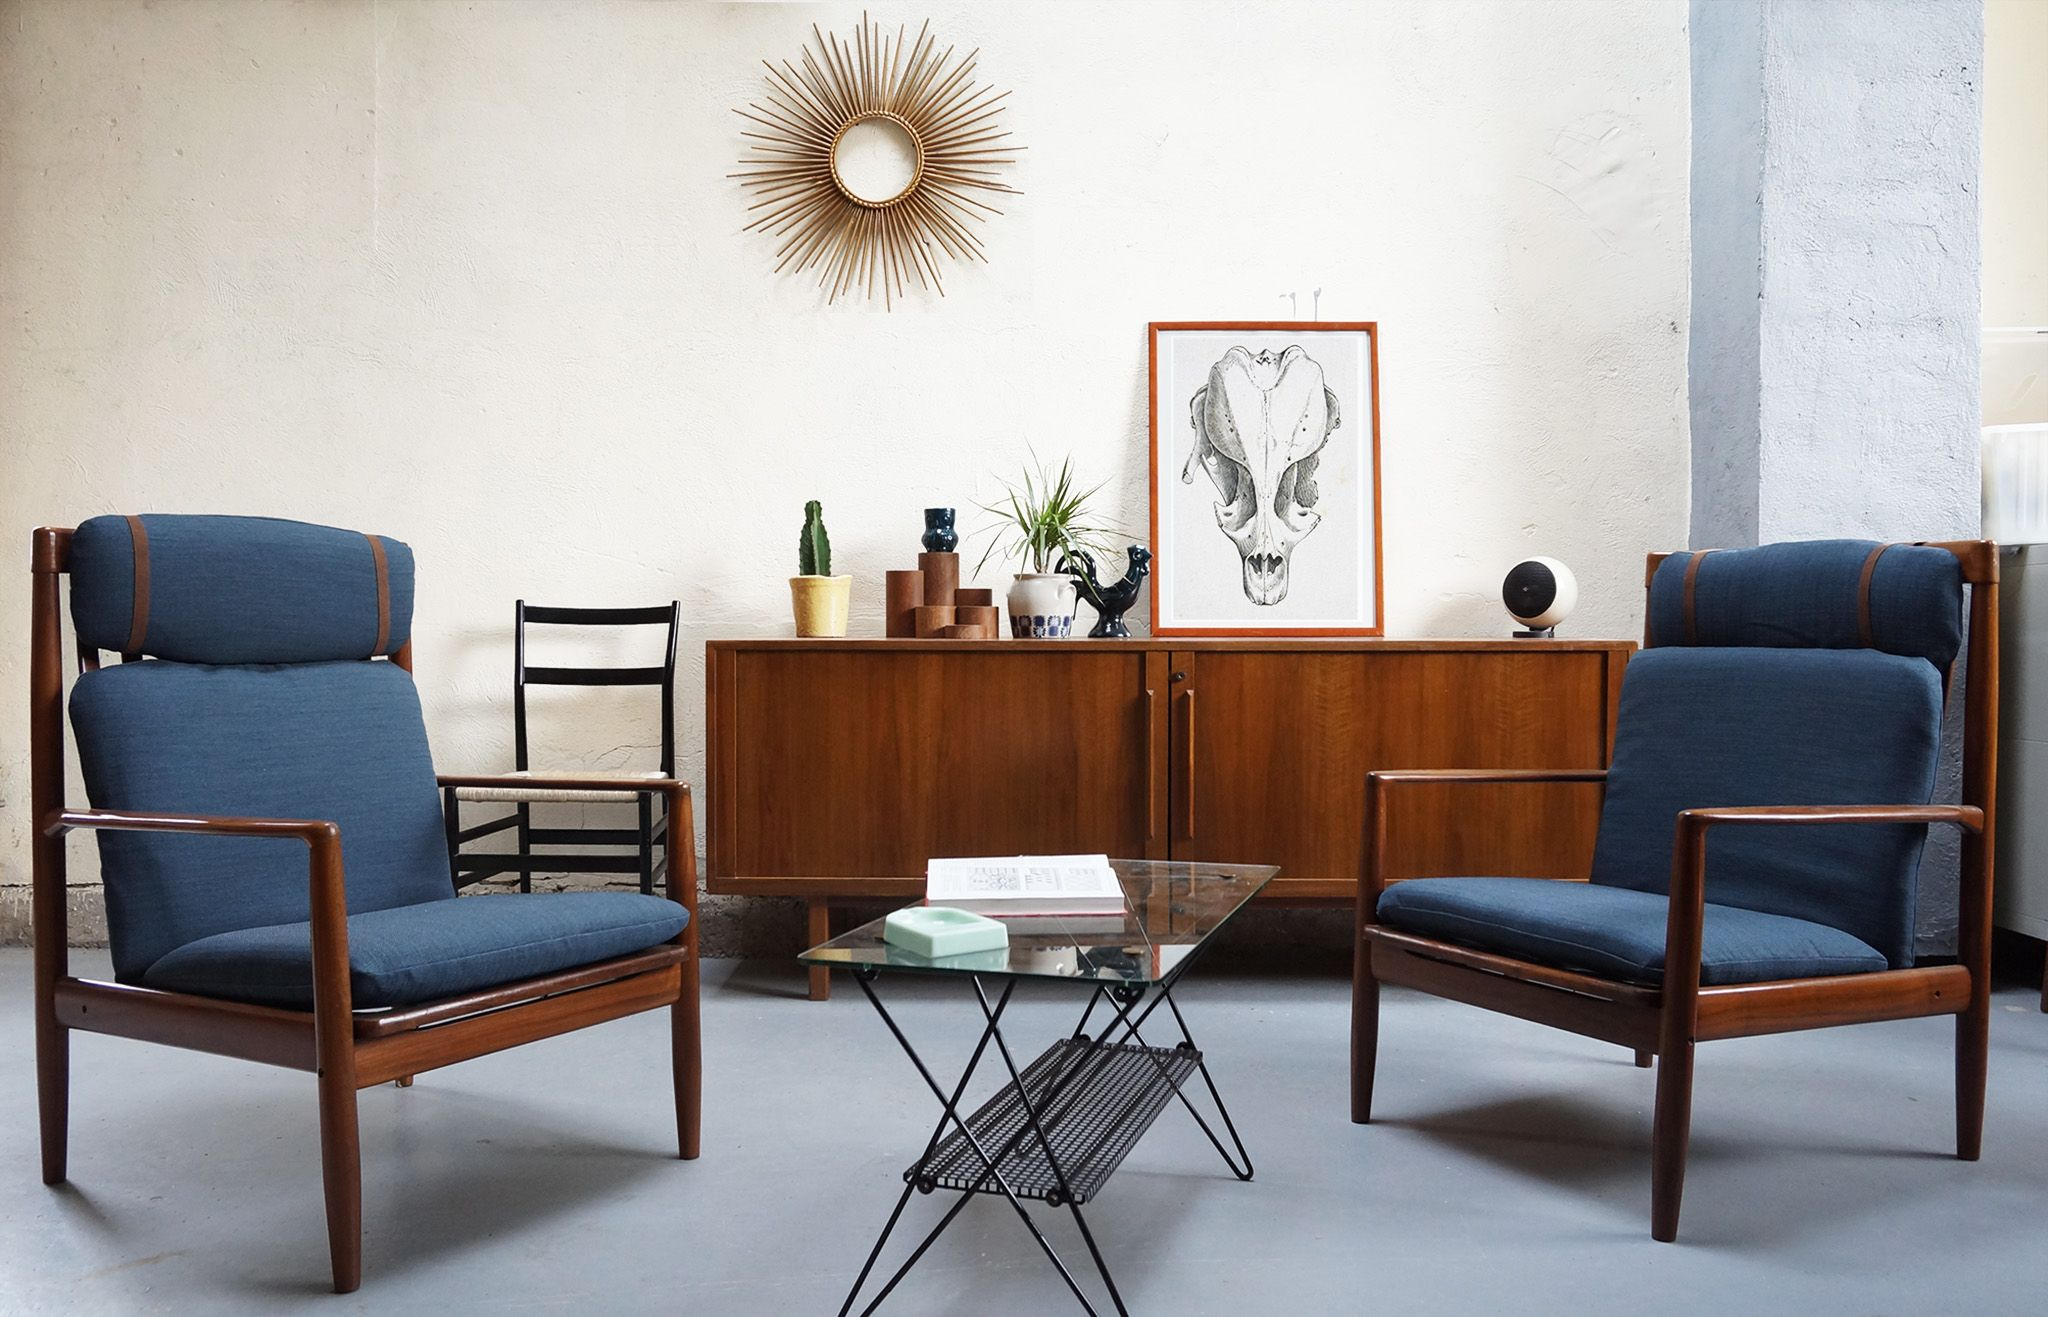 Danke galerie danke galerie vintage design furniture for Deco interieur design